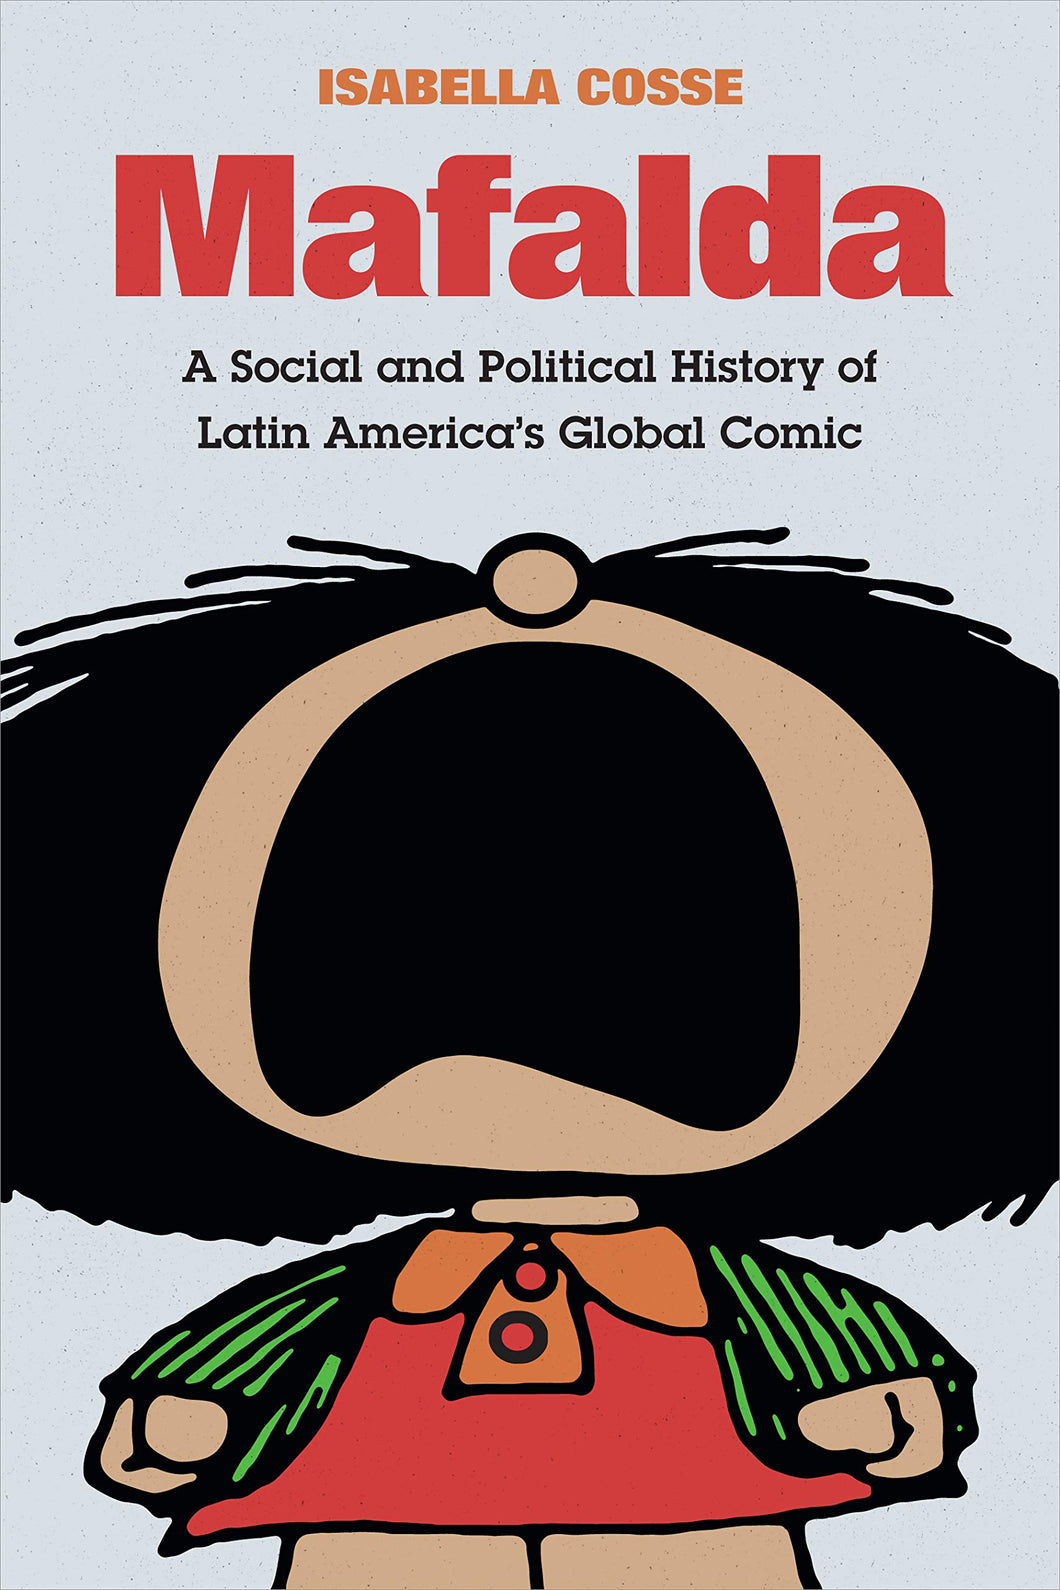 Mafalda: A Social and Political History of Latin America's Global Comic by Isabella Cosse